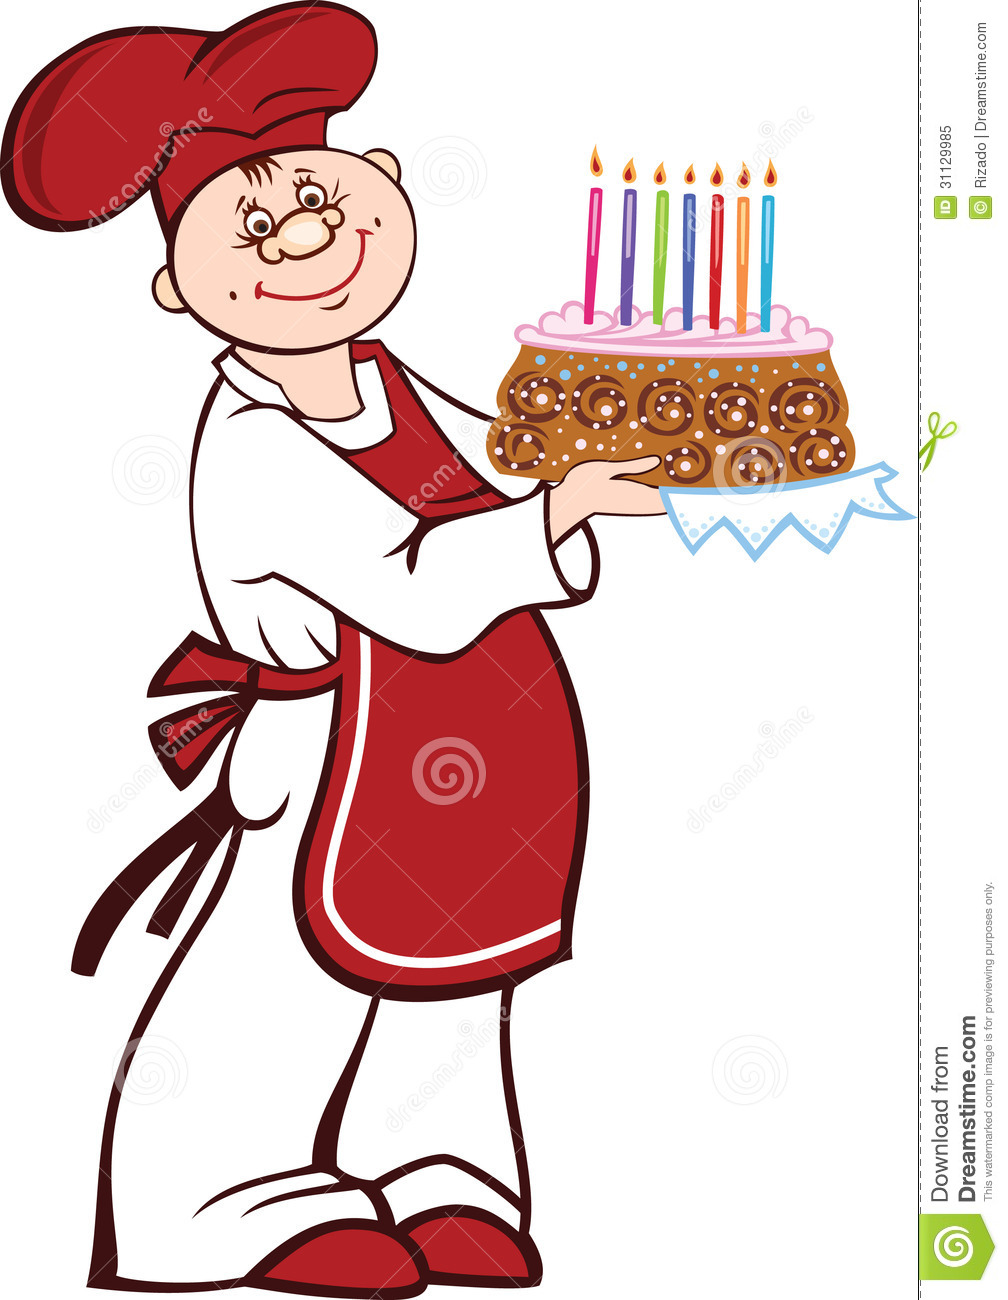 Cartoon Cook With Birthday Cake Stock Vector Image 31129985